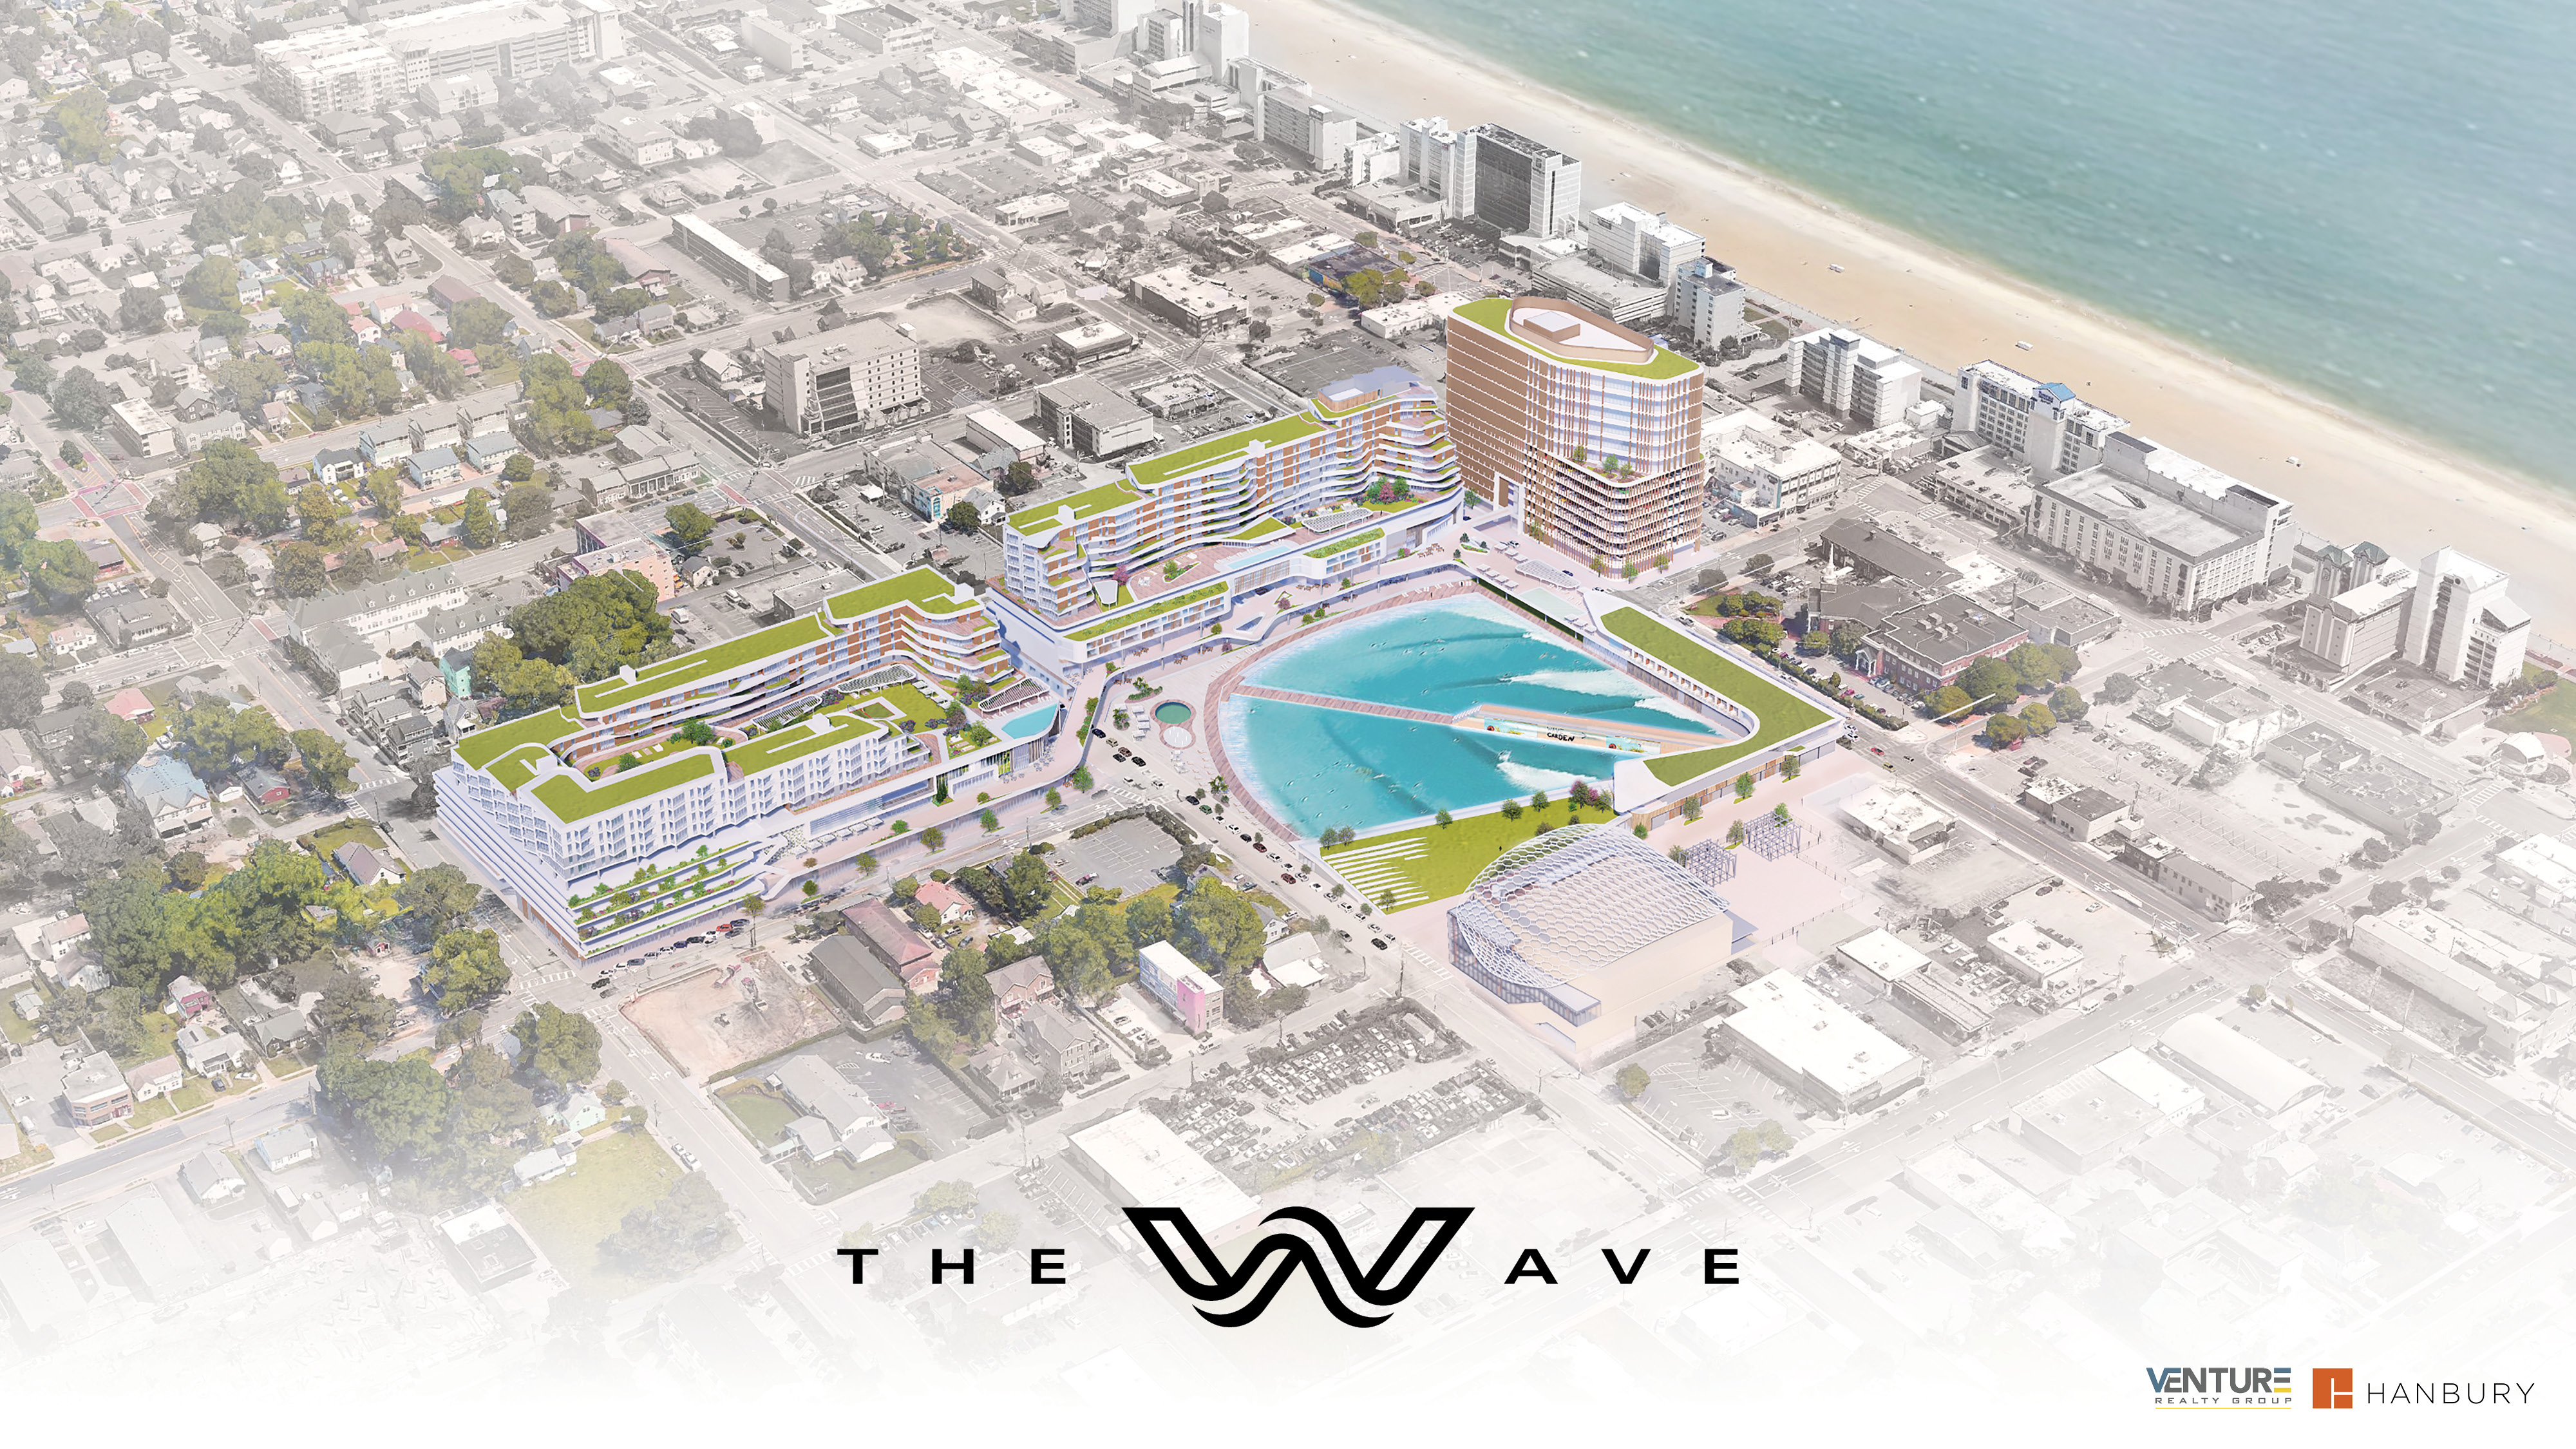 The Wave_City Council Presentation Rendering 1.jpg